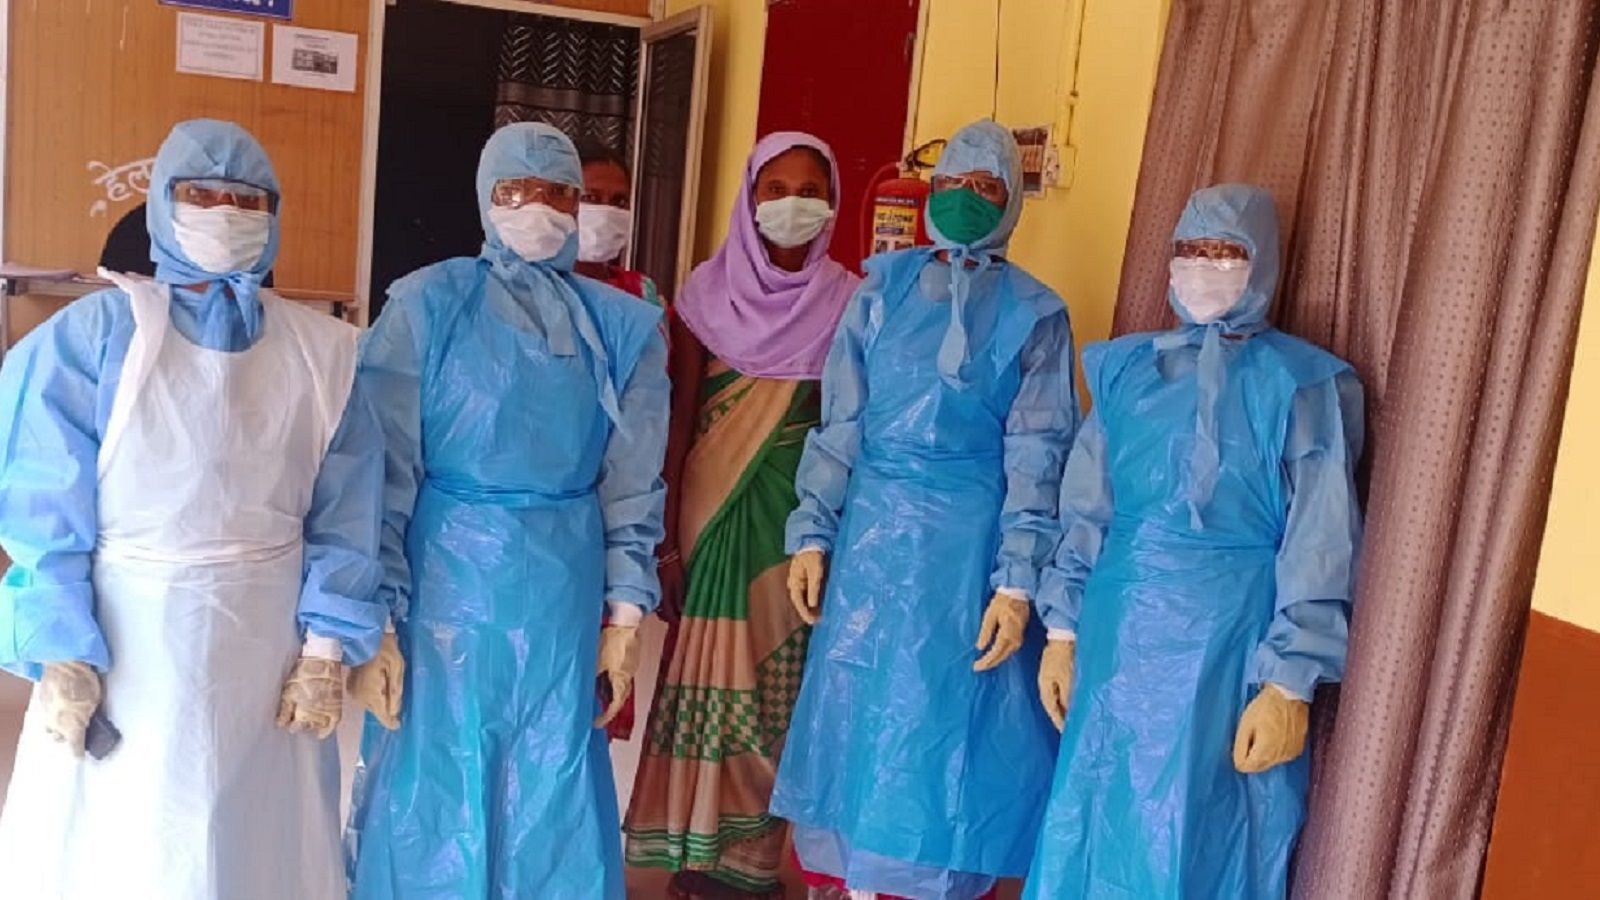 Healthcare workers wearing PPE